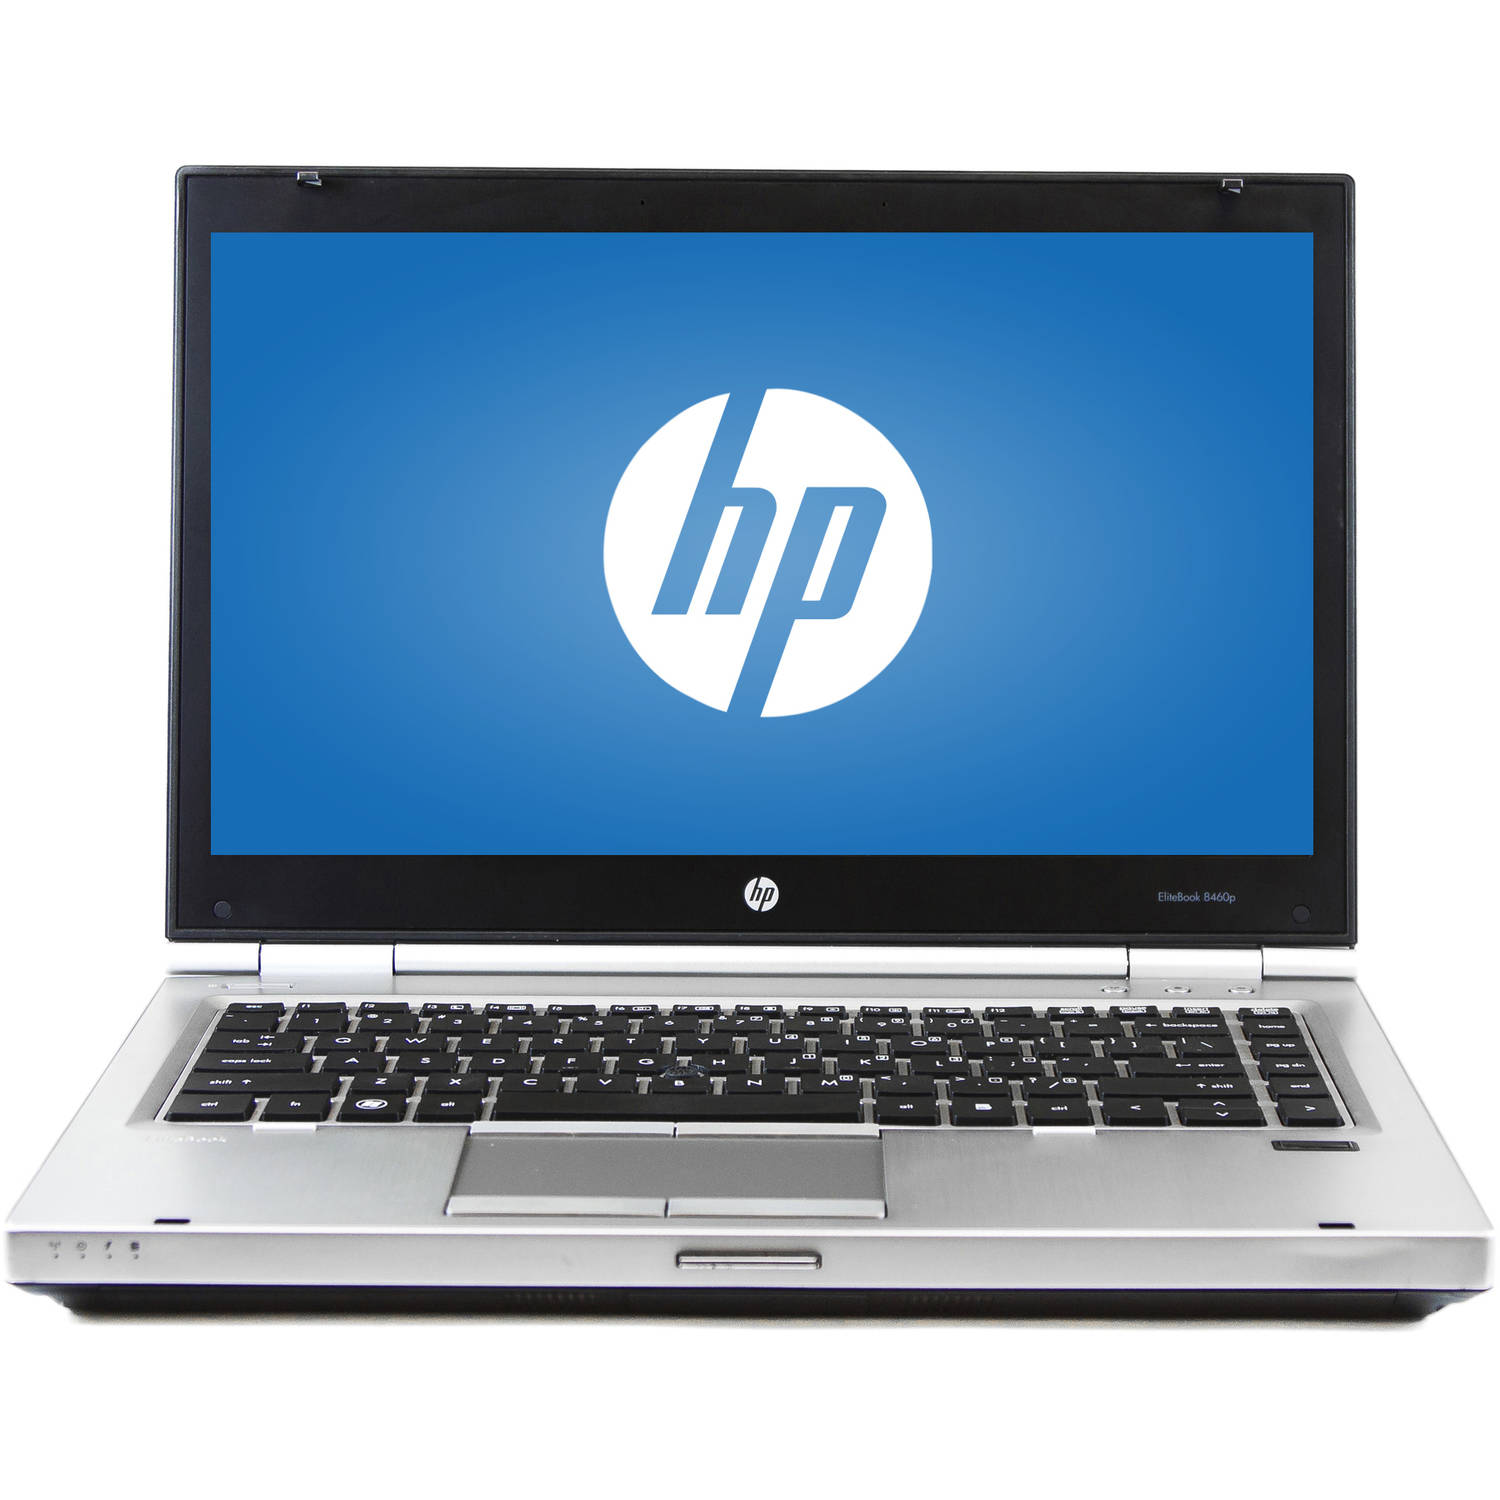 "Refurbished HP Silver 14"" Elitebook 8460P Laptop PC with Intel Core i5-2520M Processor, 8GB Memory, 750GB Hard Drive and Windows 7 Professional"